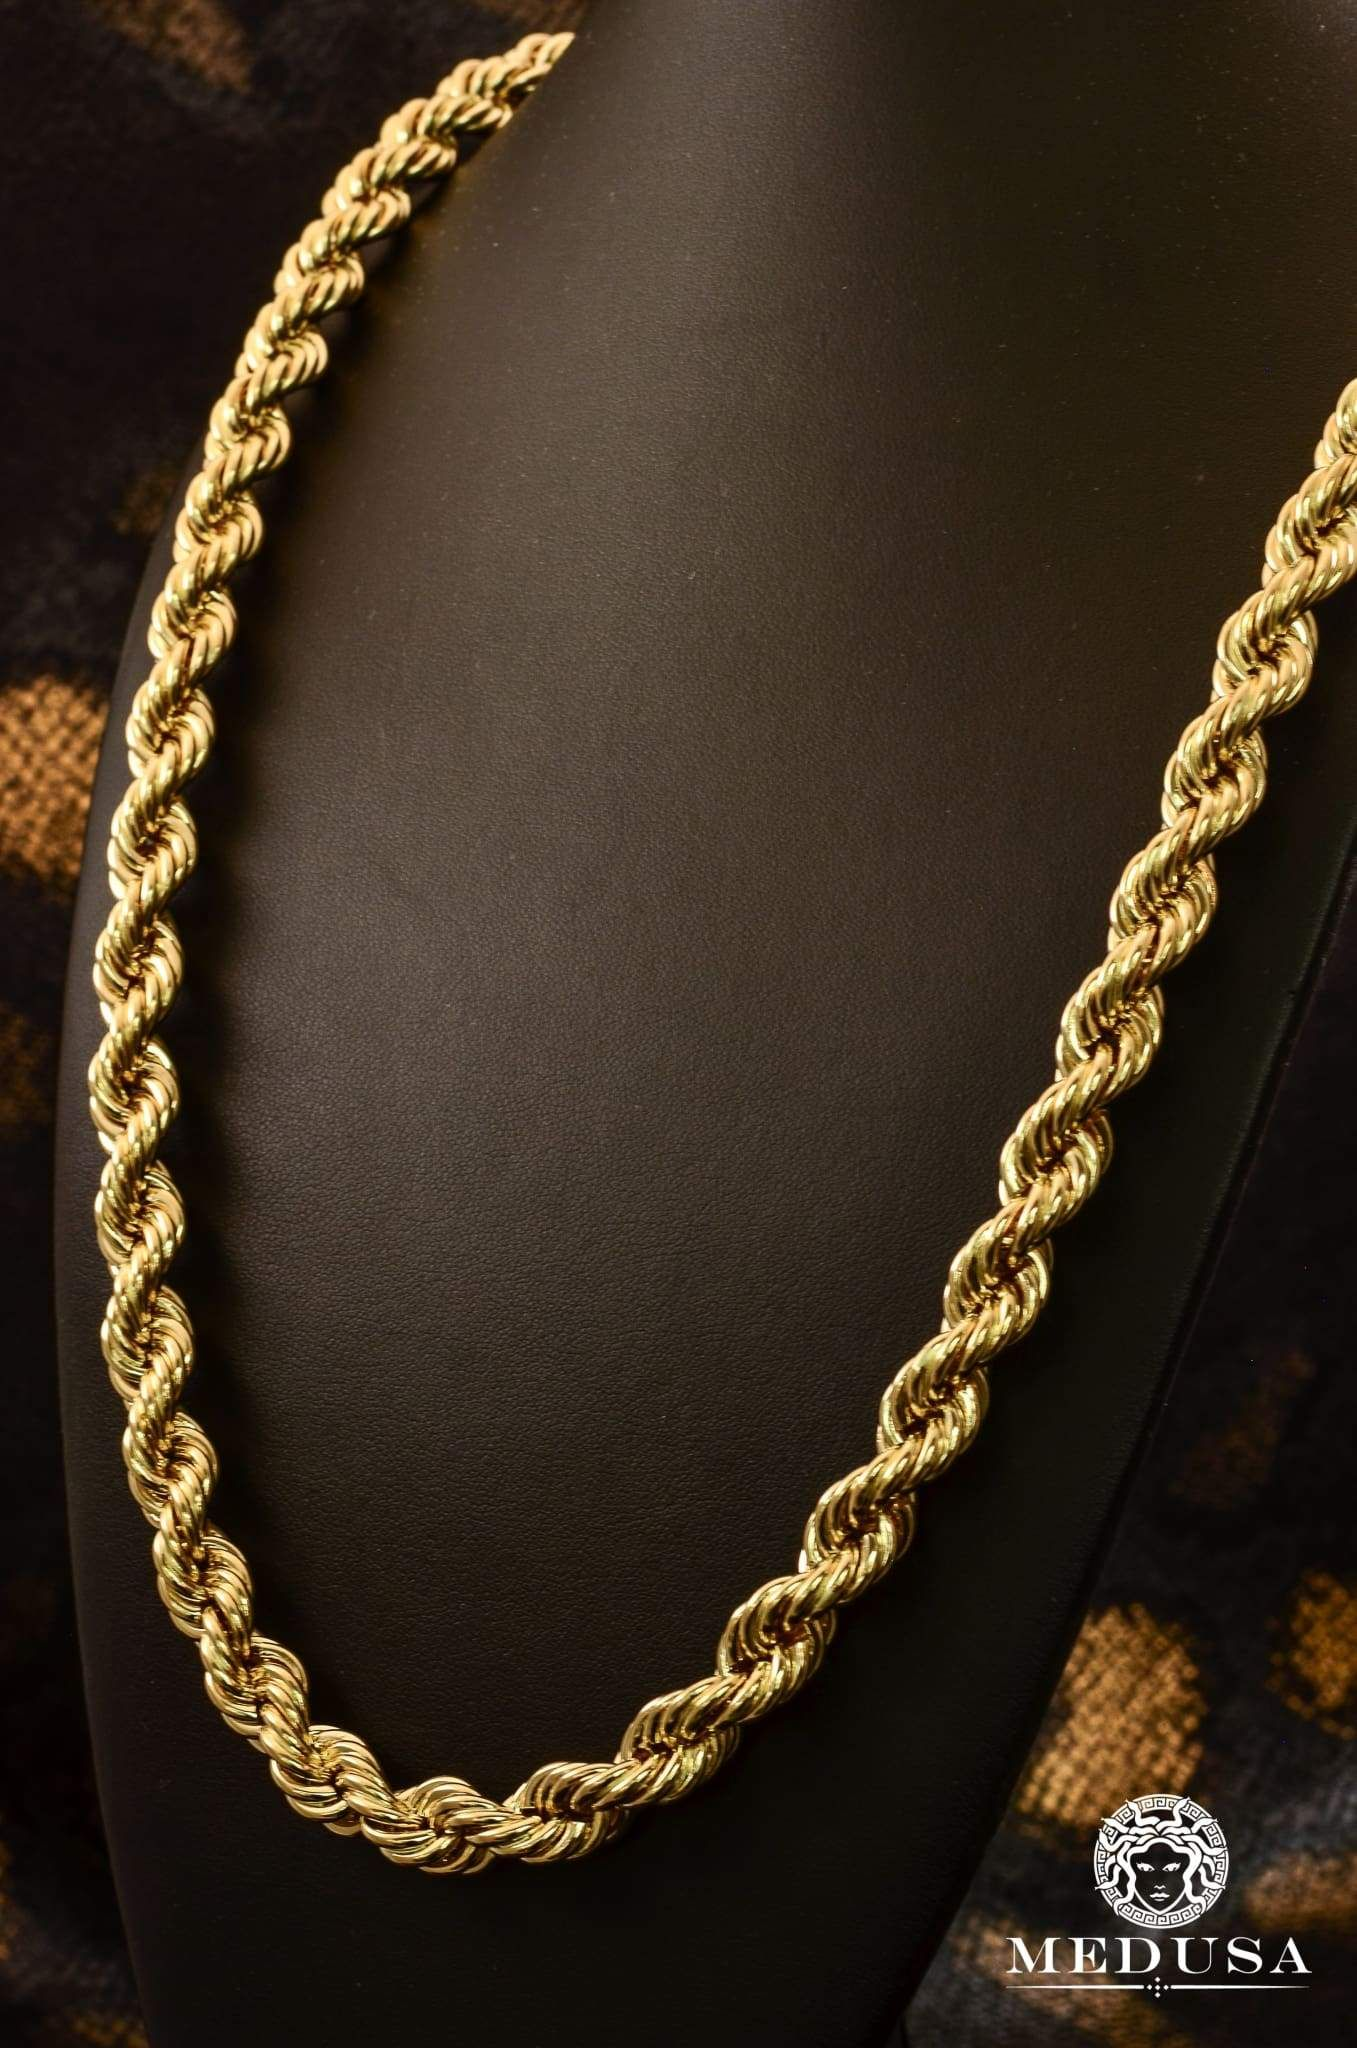 10mm Torsade Gold Necklace Designs Chunky Gold Necklaces Art Deco Jewelry Necklace